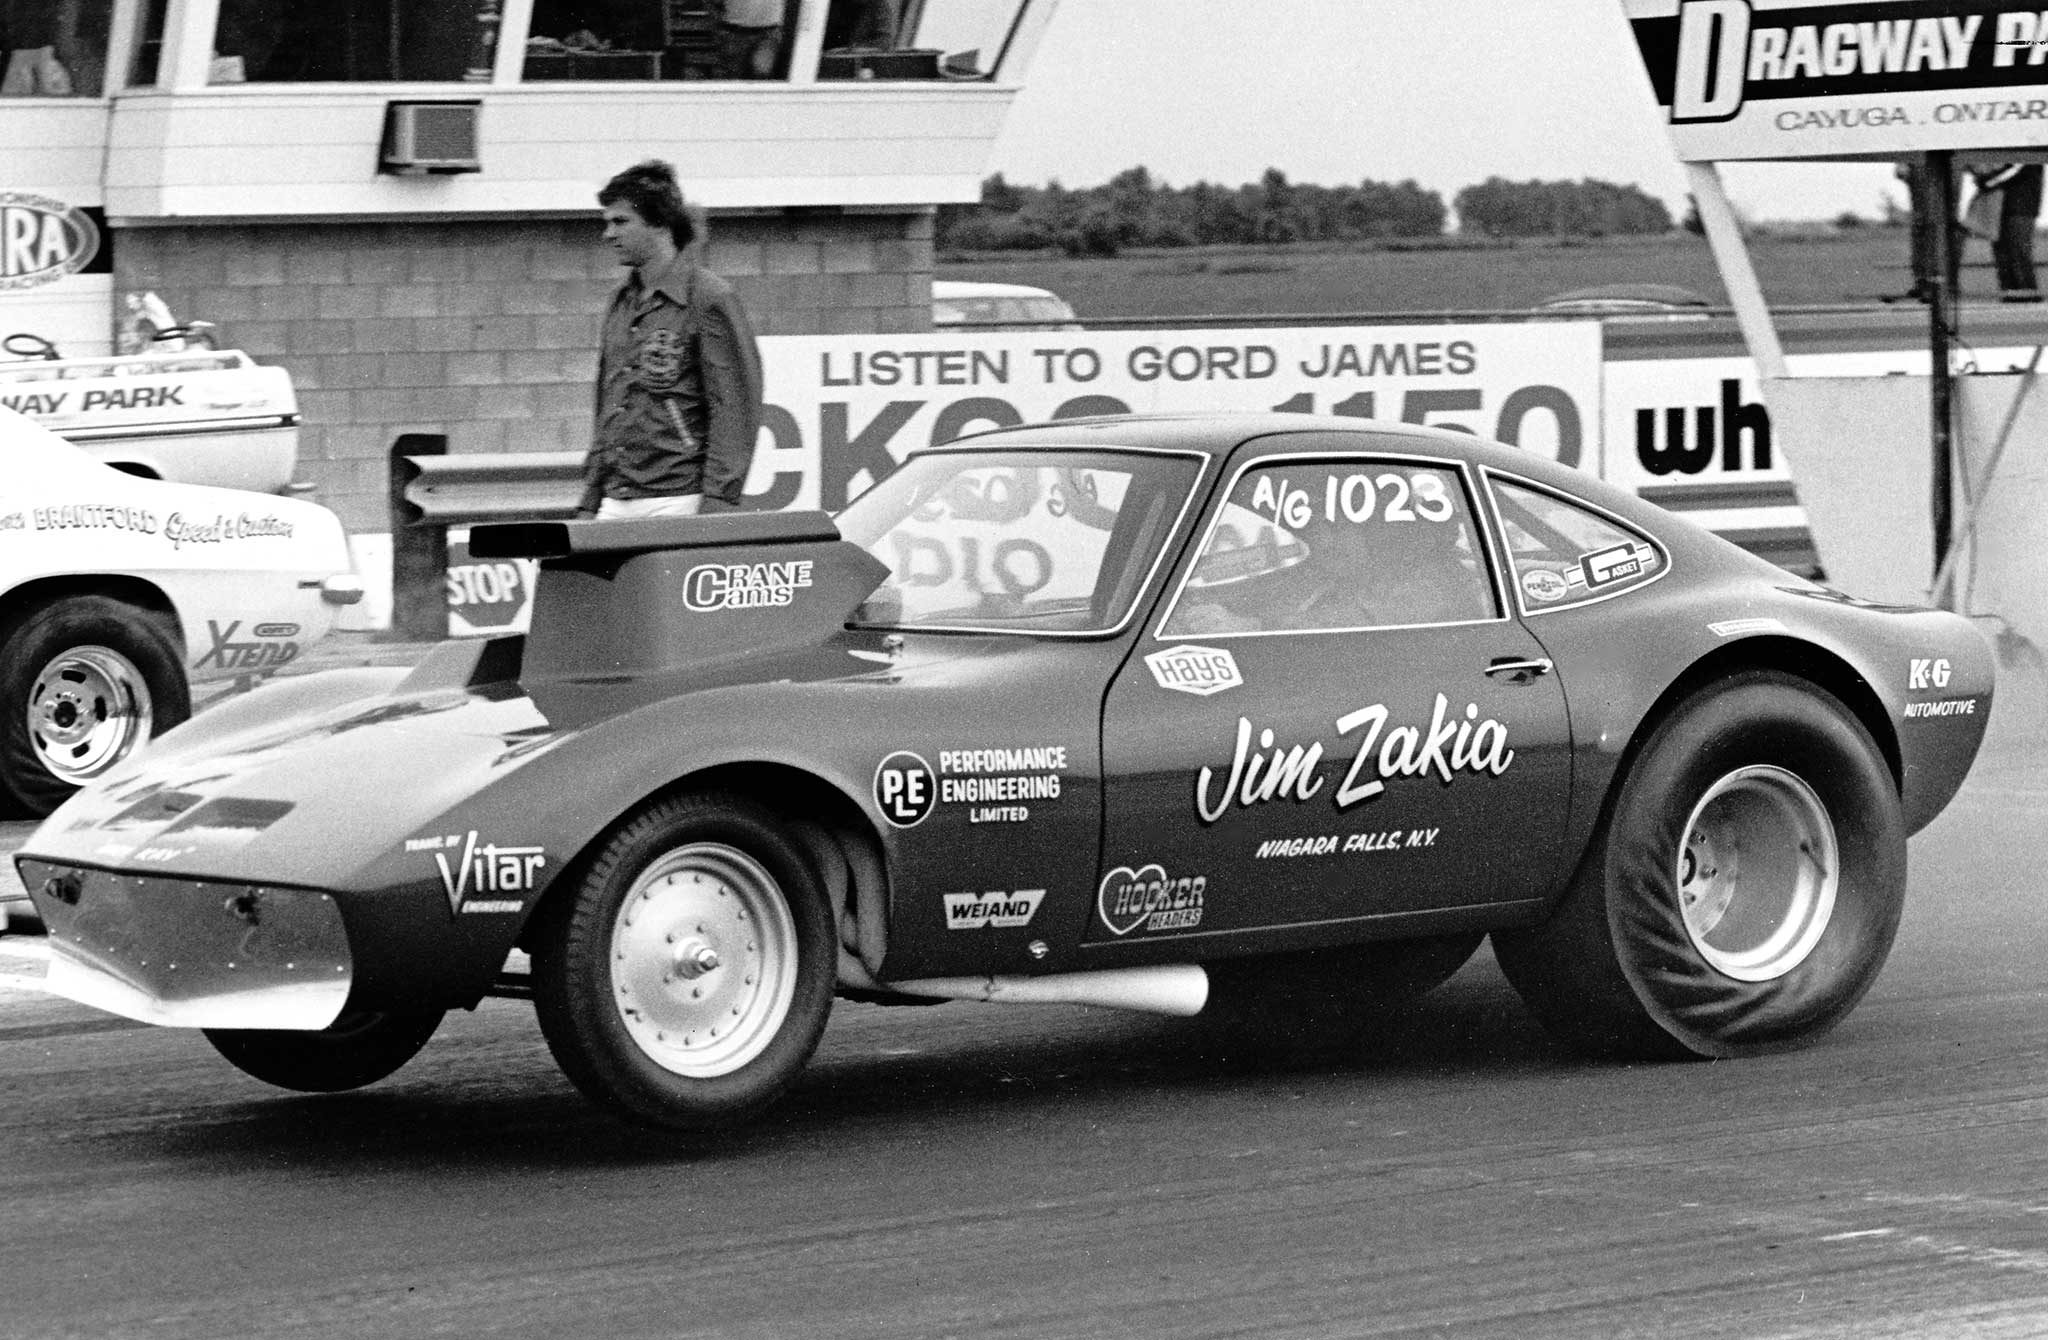 Jim Zakia's first race car was a 1955 Chevy, followed by an A/Gas 1948 Anglia. This Opel GT was his last, and fastest, A/Gasser. Zakia, from Niagara Falls, New York, saw through the mist to set the class record several times and win class at the Nationals. Here he runs at Dragway Park in Ontario, Canada.